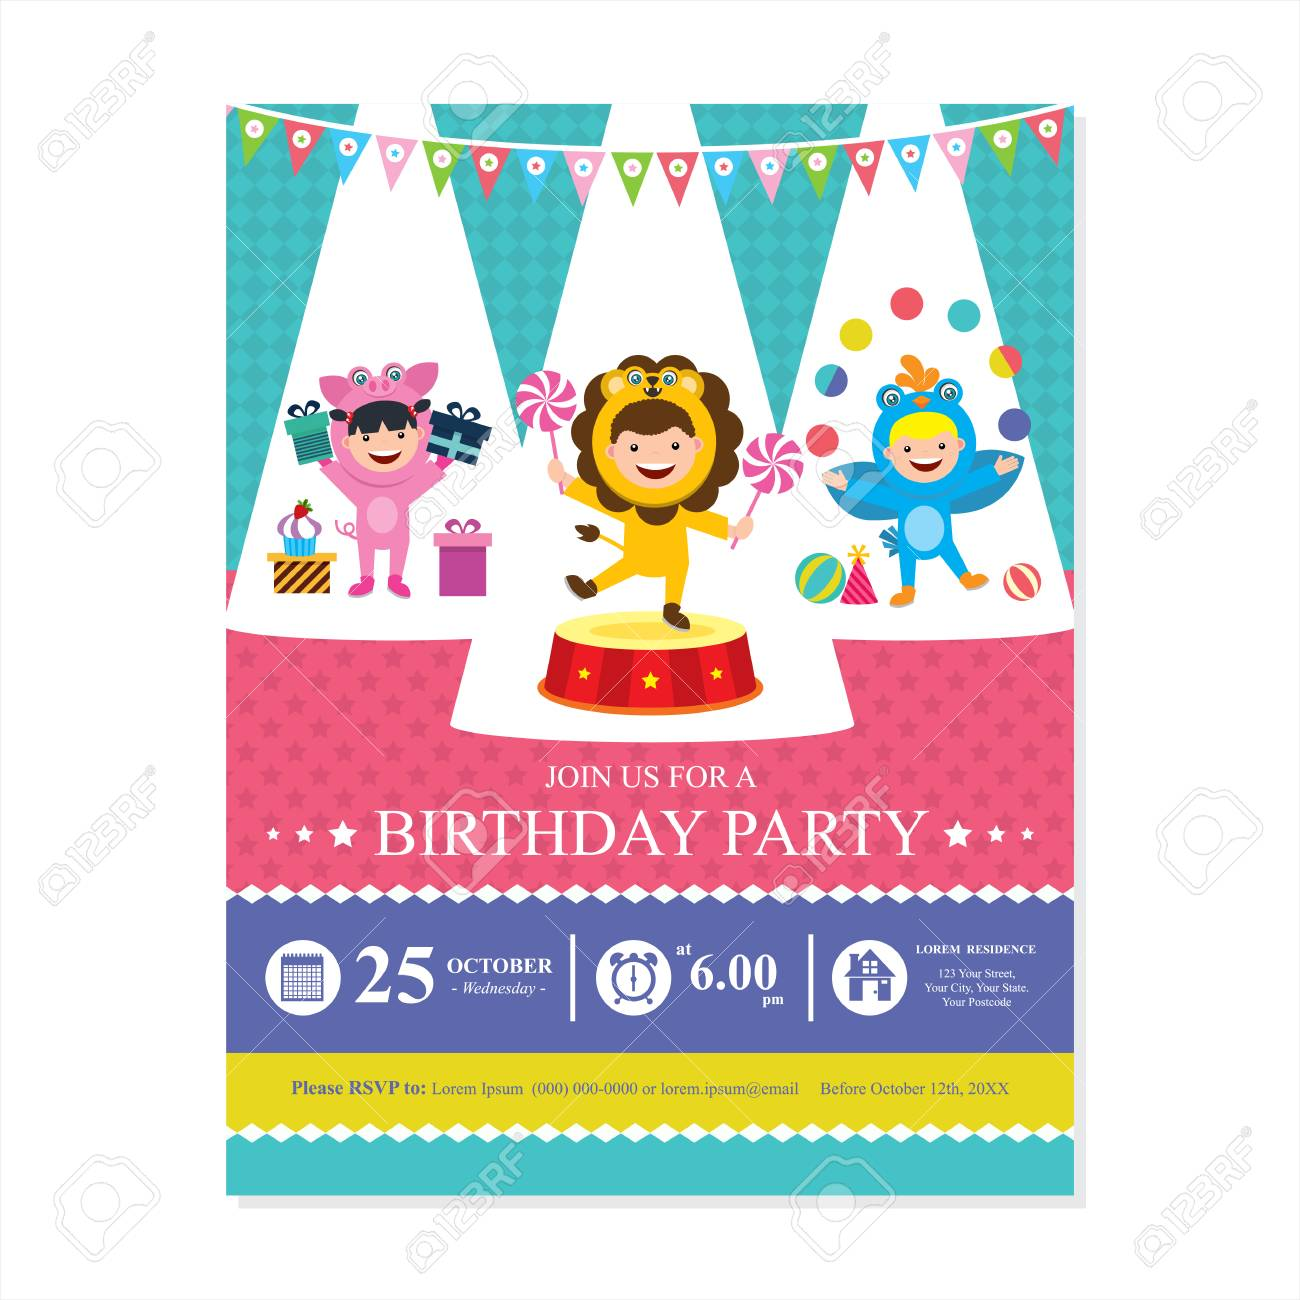 Birthday Card Invitation With Kids In Circus Costume Stock Vector